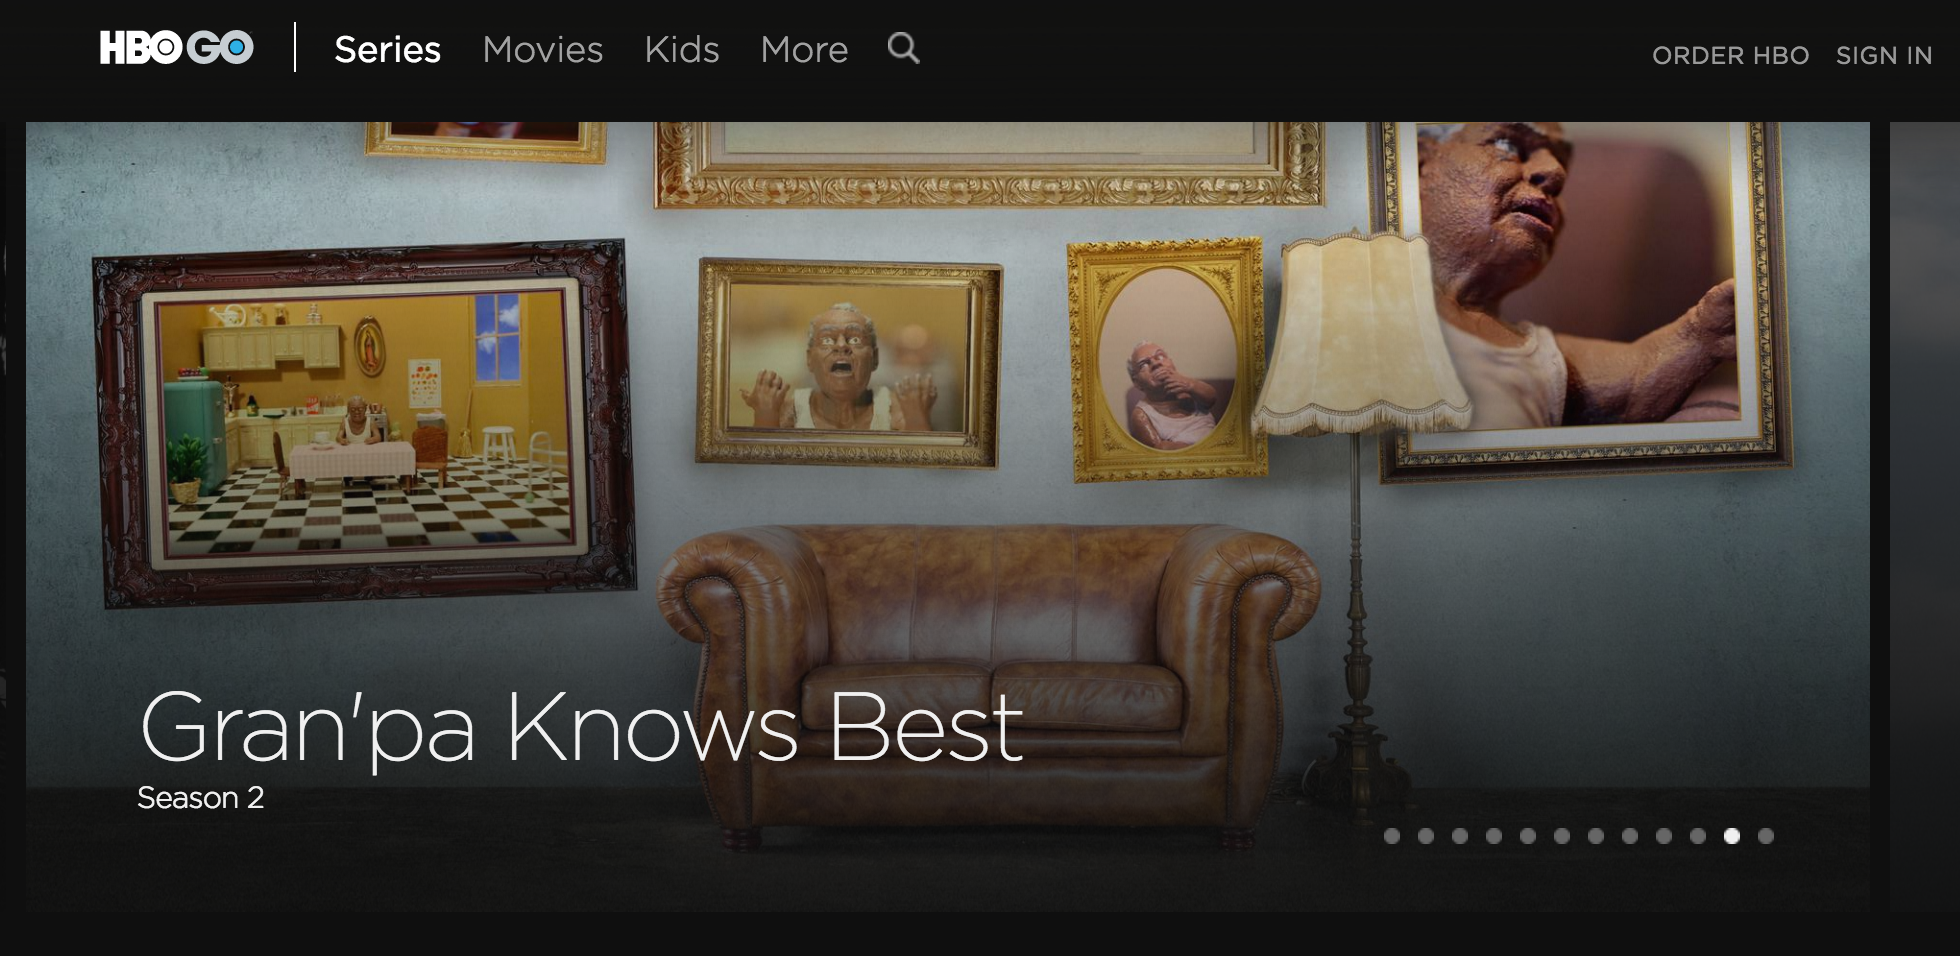 JUNE 2016:  Season 2 of Gran'pa Knows Best debuted on HBO, HBO GO, and HBO NOW on June 17th, 2016.     Gran'pa Knows Best i s a hilarious interactive interstitial series where my Puerto Rican Grandfather answers YOUR questions!The project was picked up by HBO LATINO within weeks of its online web-series premiere in January,2015. The project also made history with HBO, becoming the first contracted interstitial series ever licensed by the company.